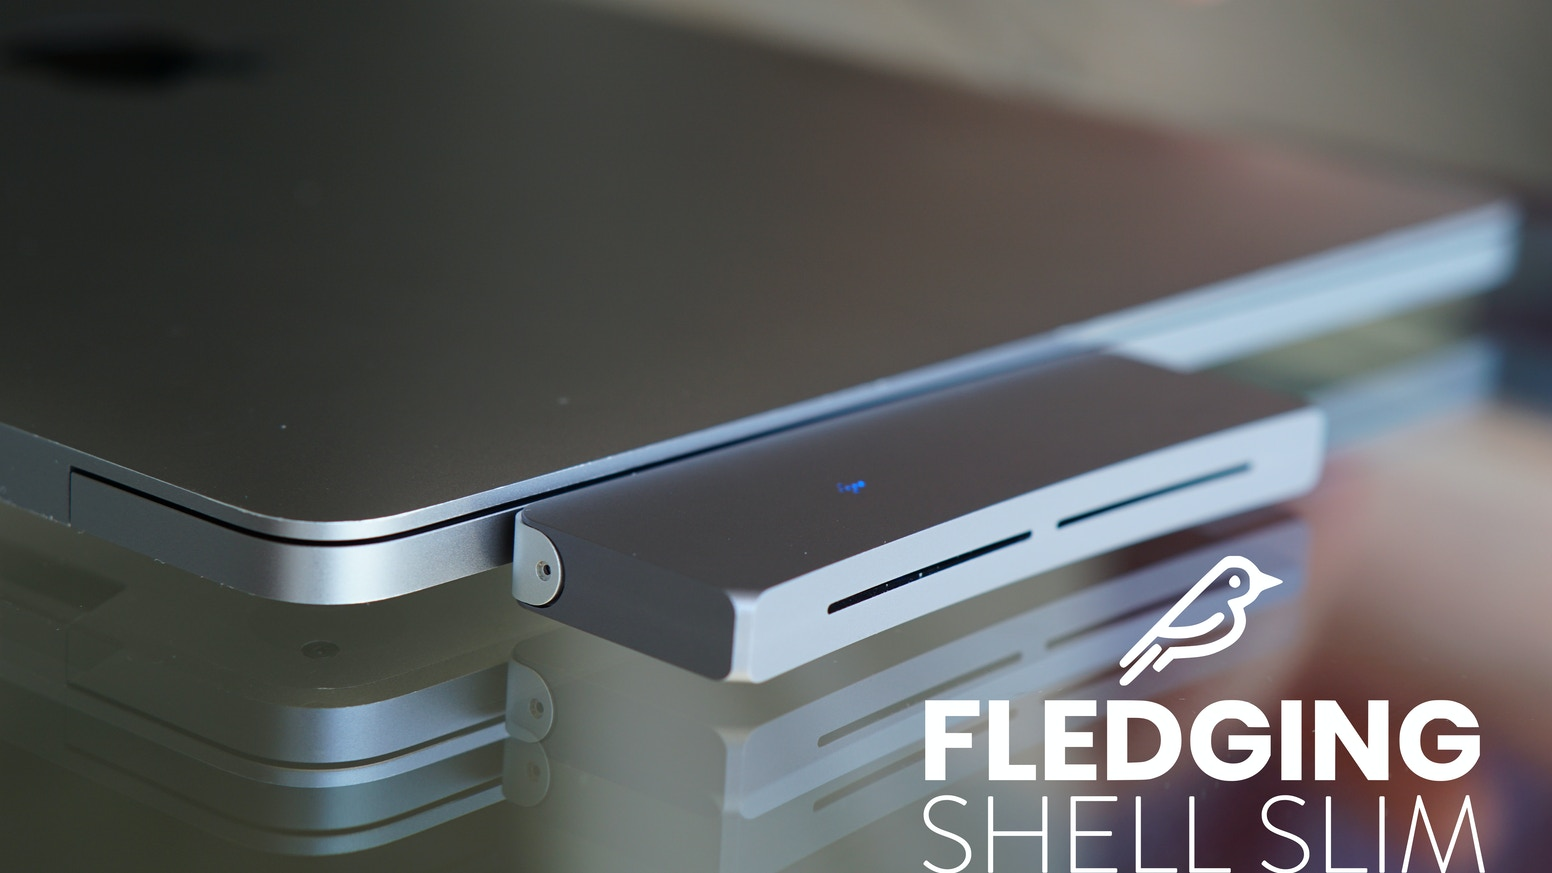 Get extra storage without the hassle of tangled cables with Shell Slim, a cableless external solid state drive.